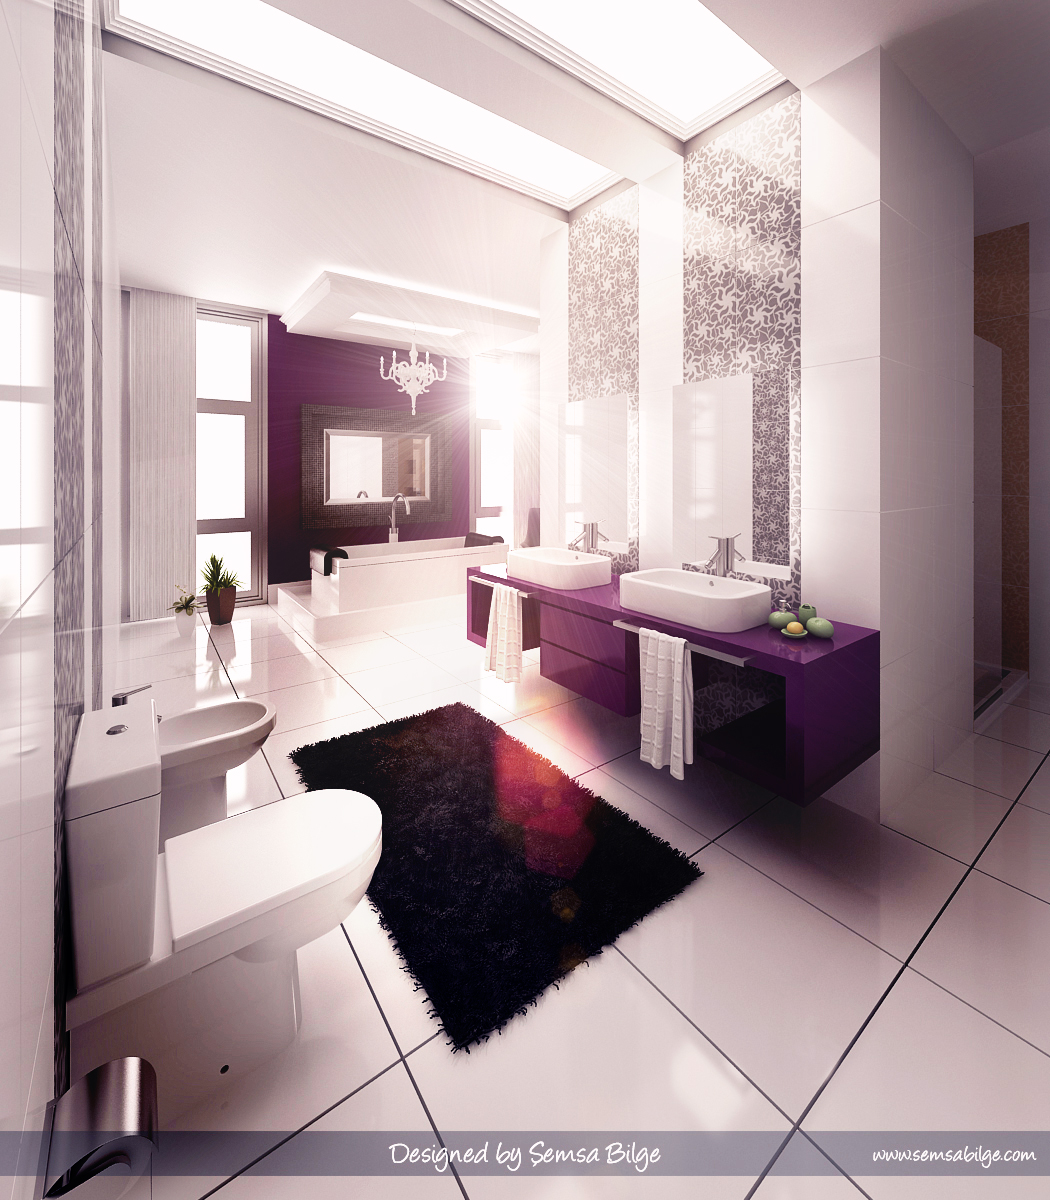 Inspirational Bathroom Inspiring Bathroom Designs For The Soul